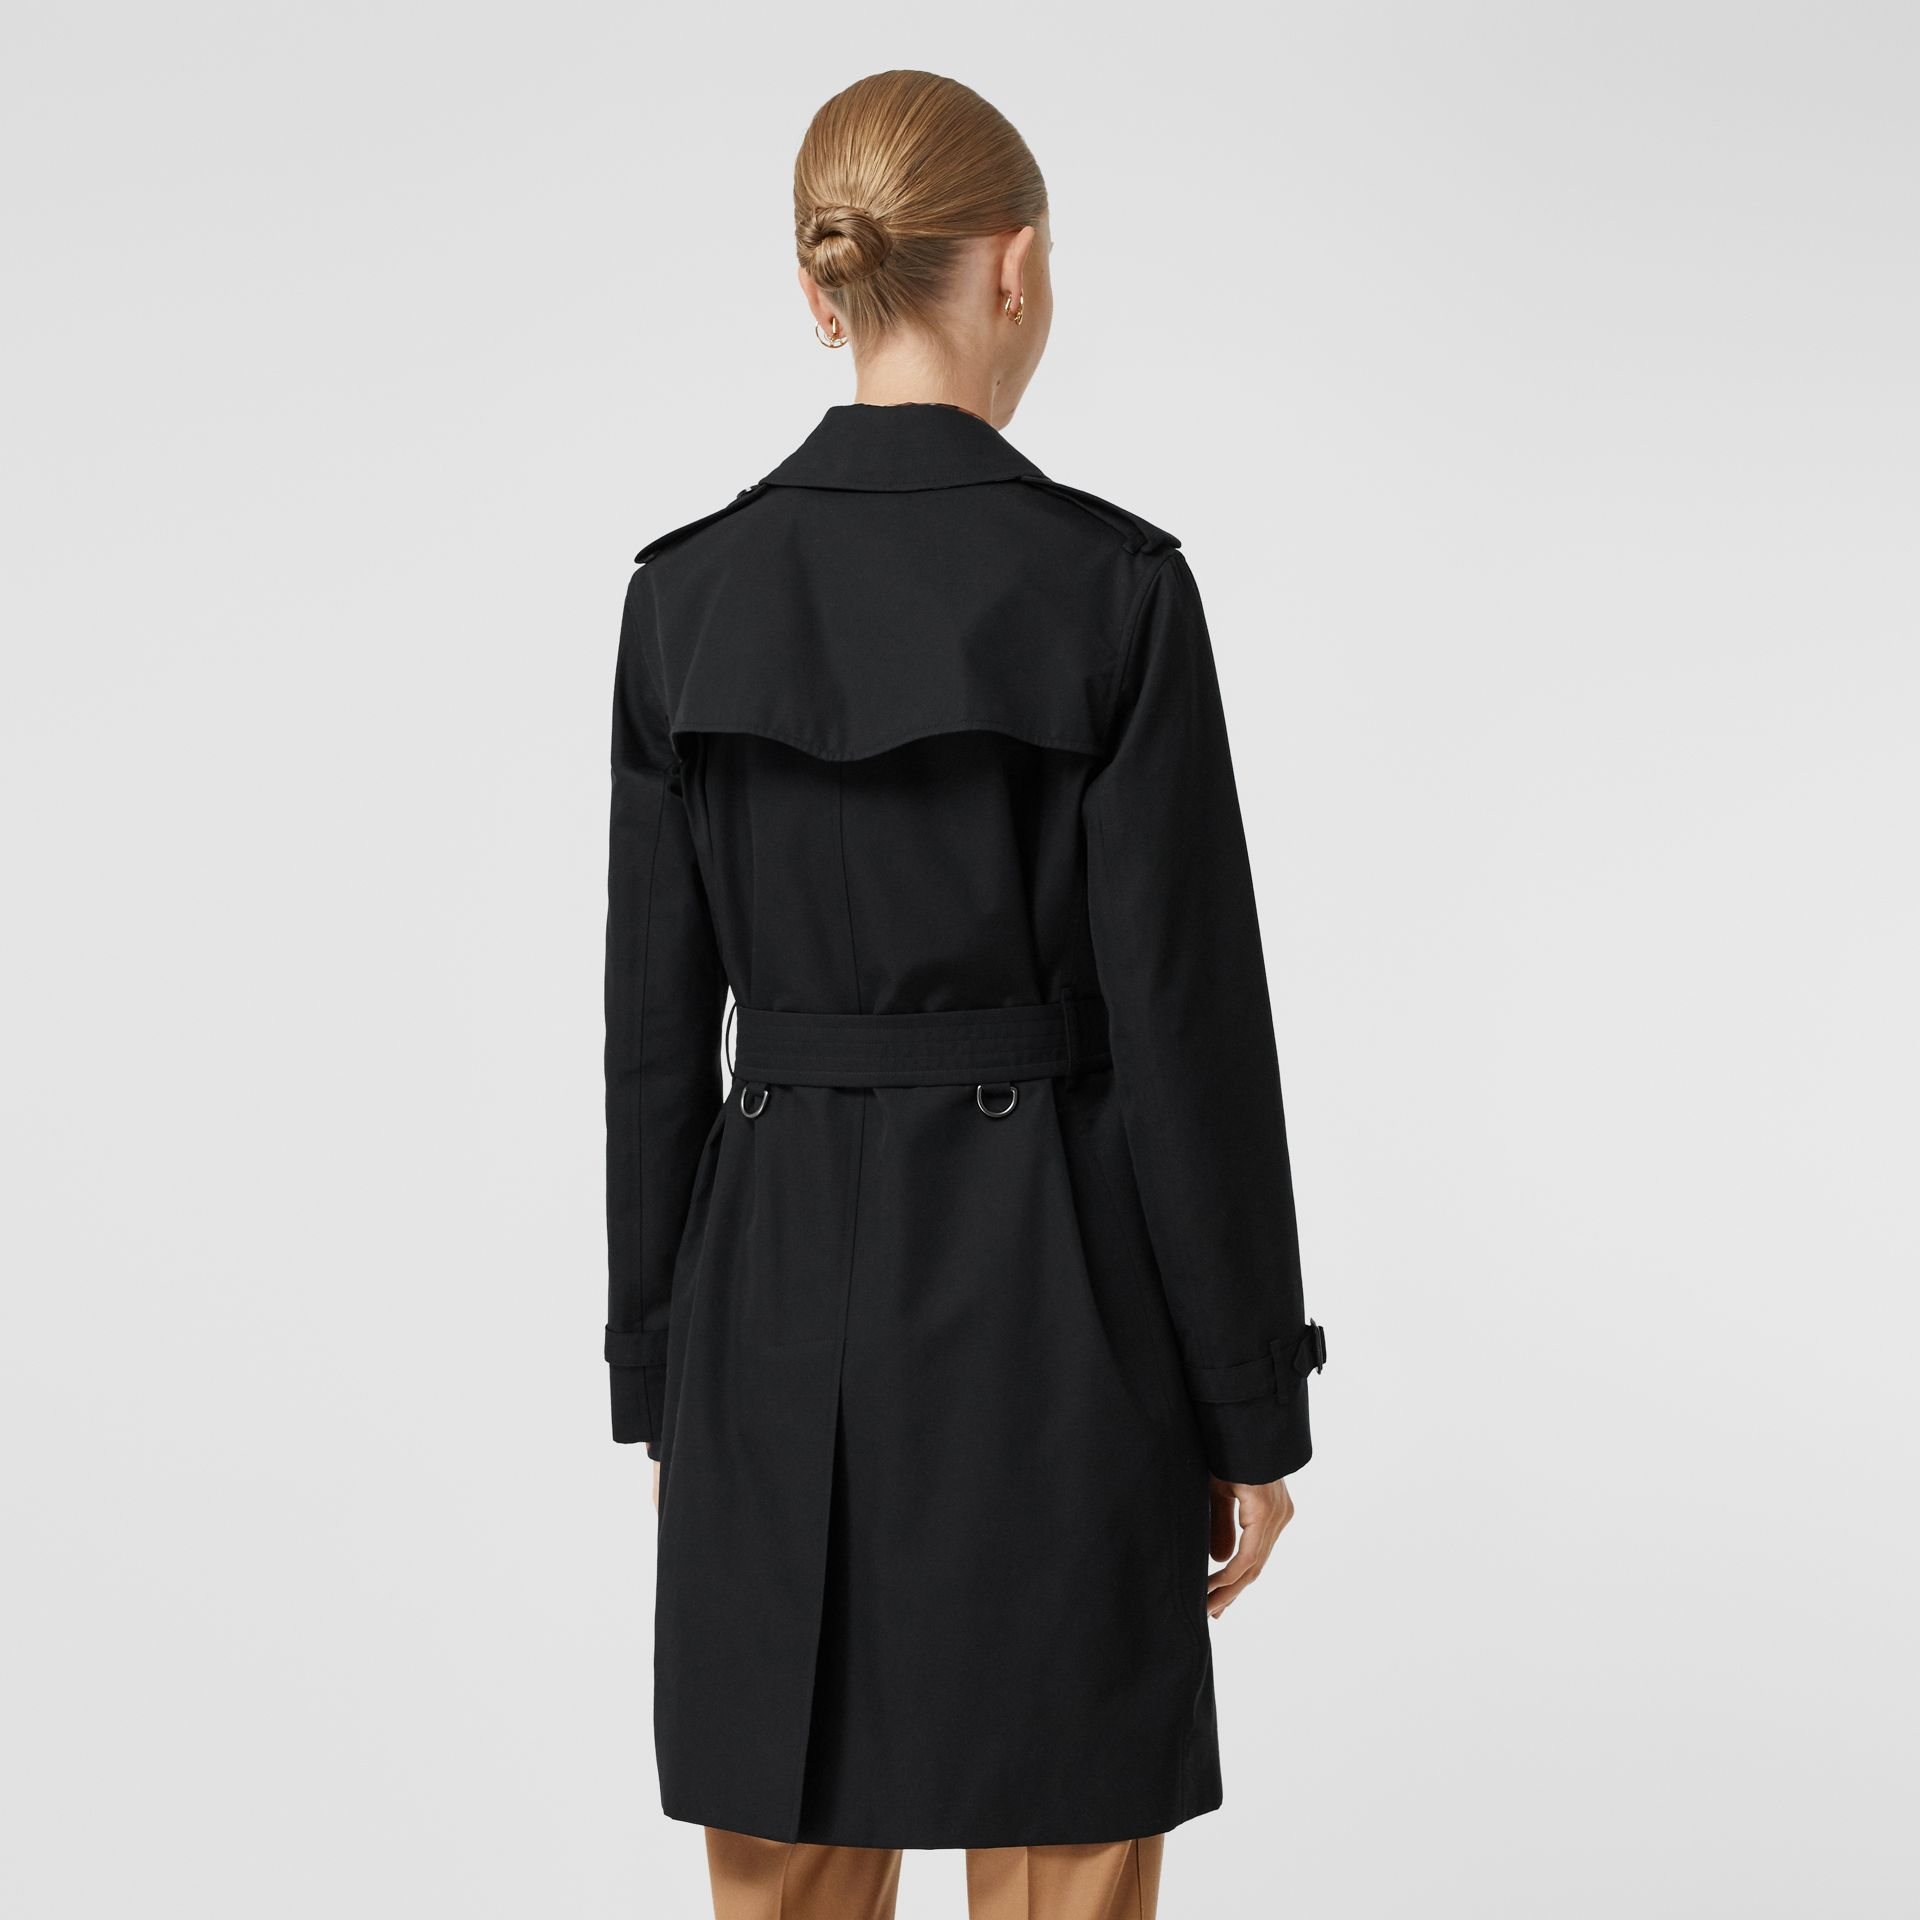 Kensington Fit Cotton Gabardine Trench Coat in Black - Women | Burberry - gallery image 2